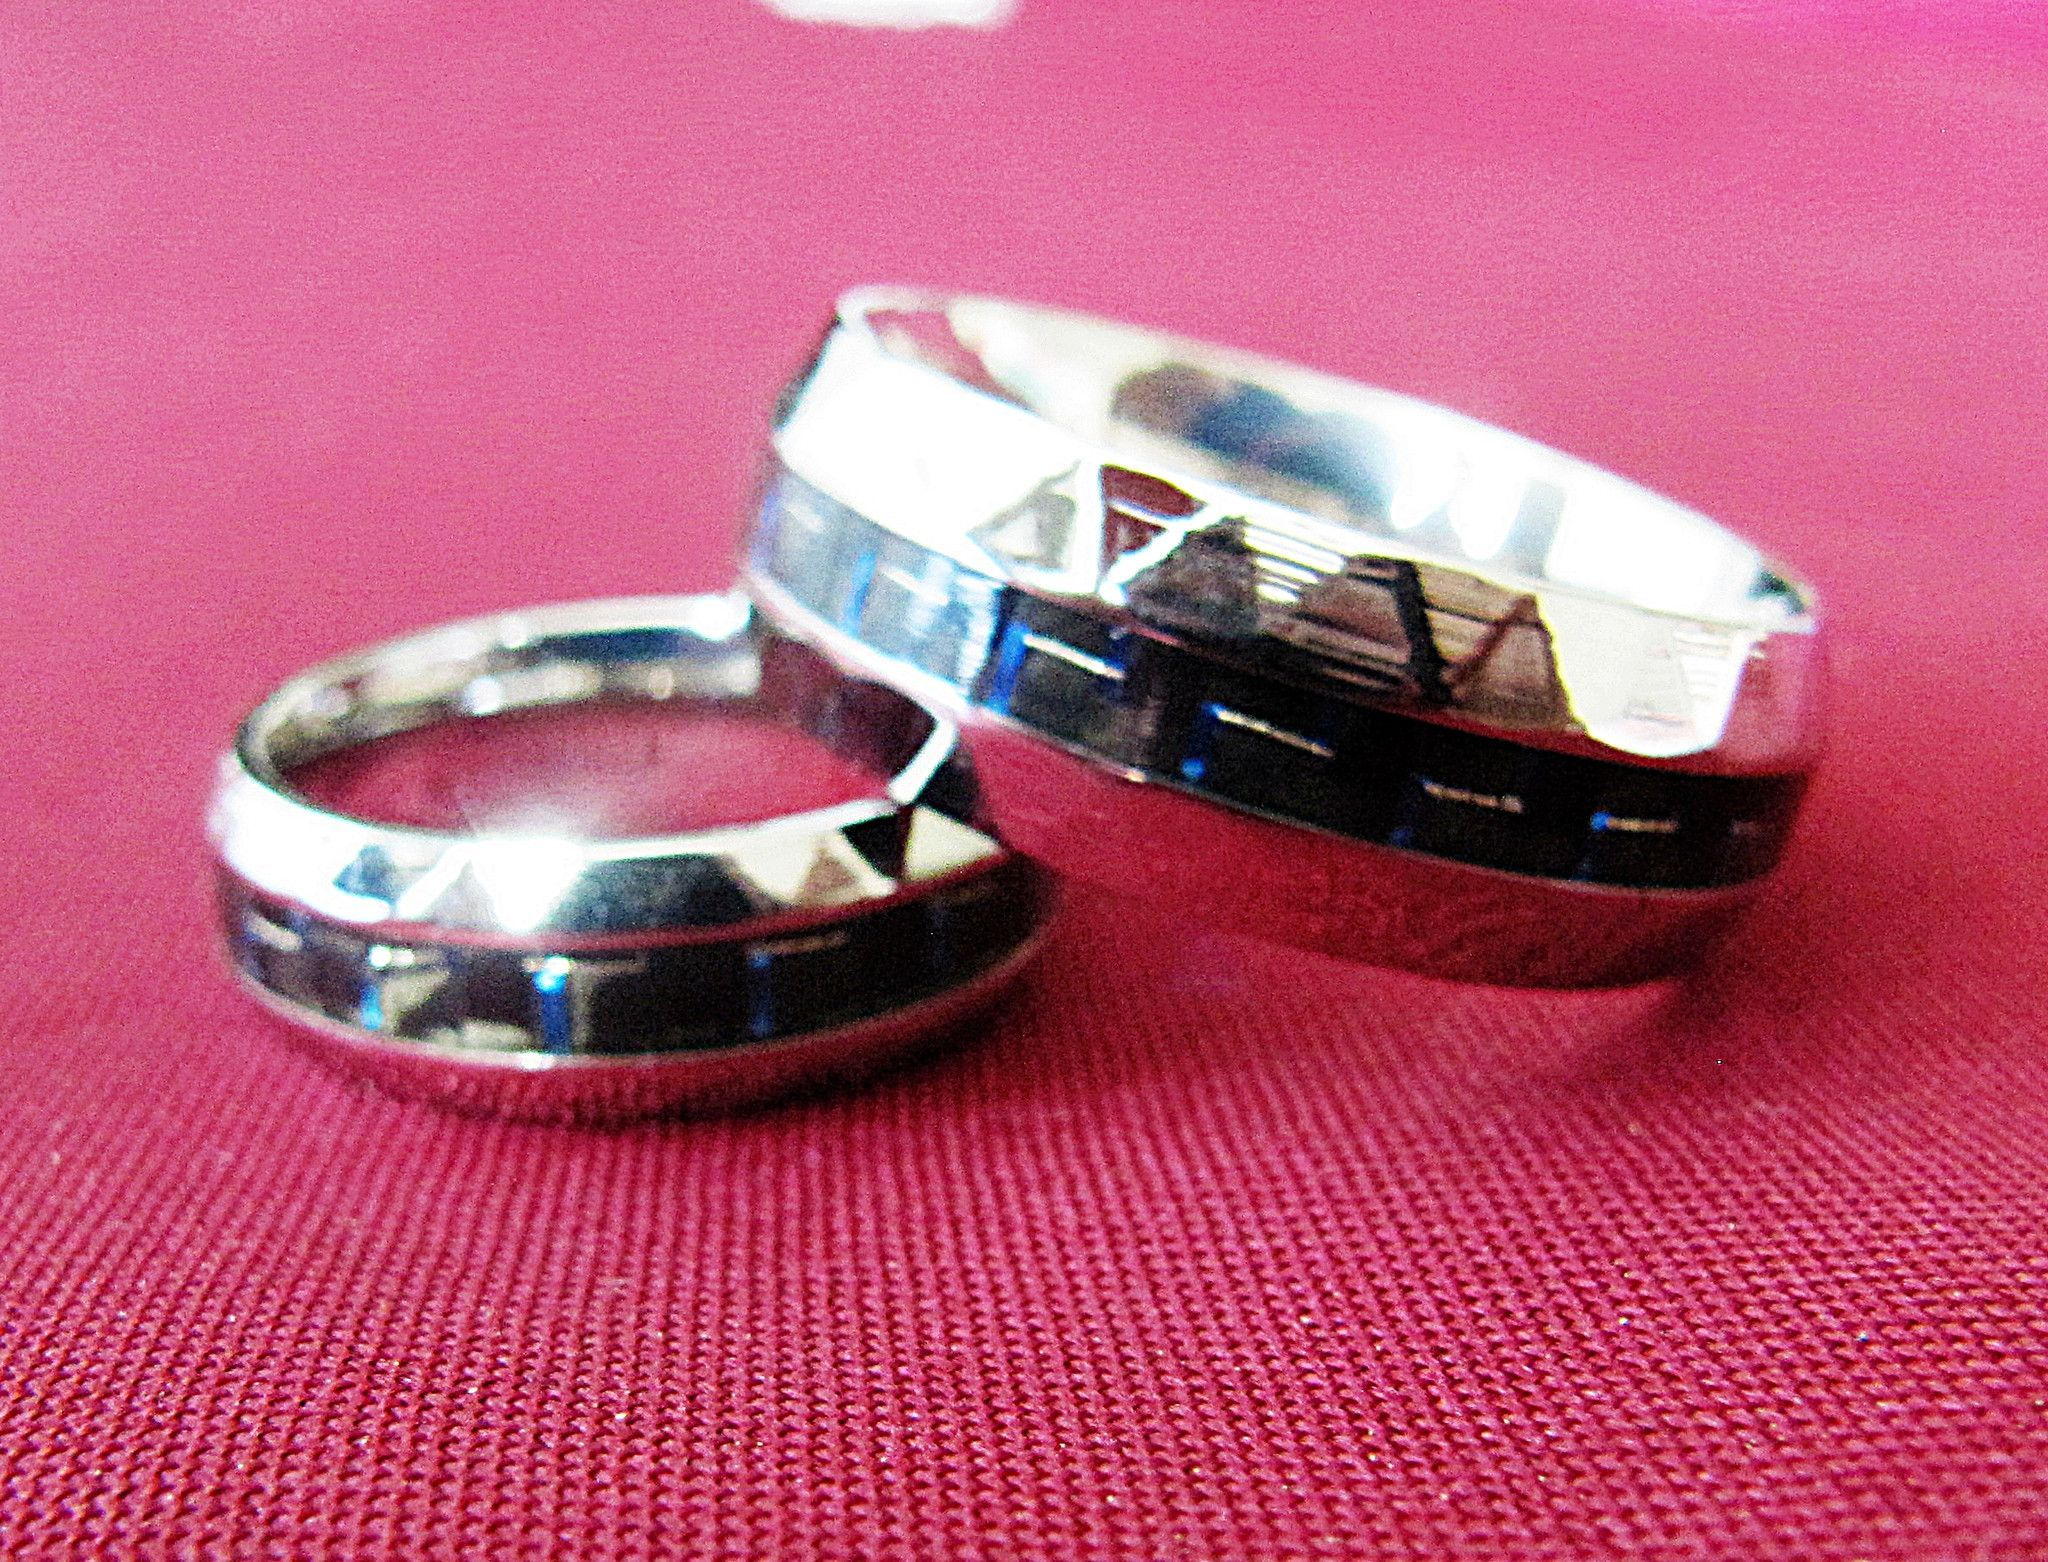 316 Stainless Steel Ring Mulit-faceted Edges Blue Carbon Fiber Inlay ...